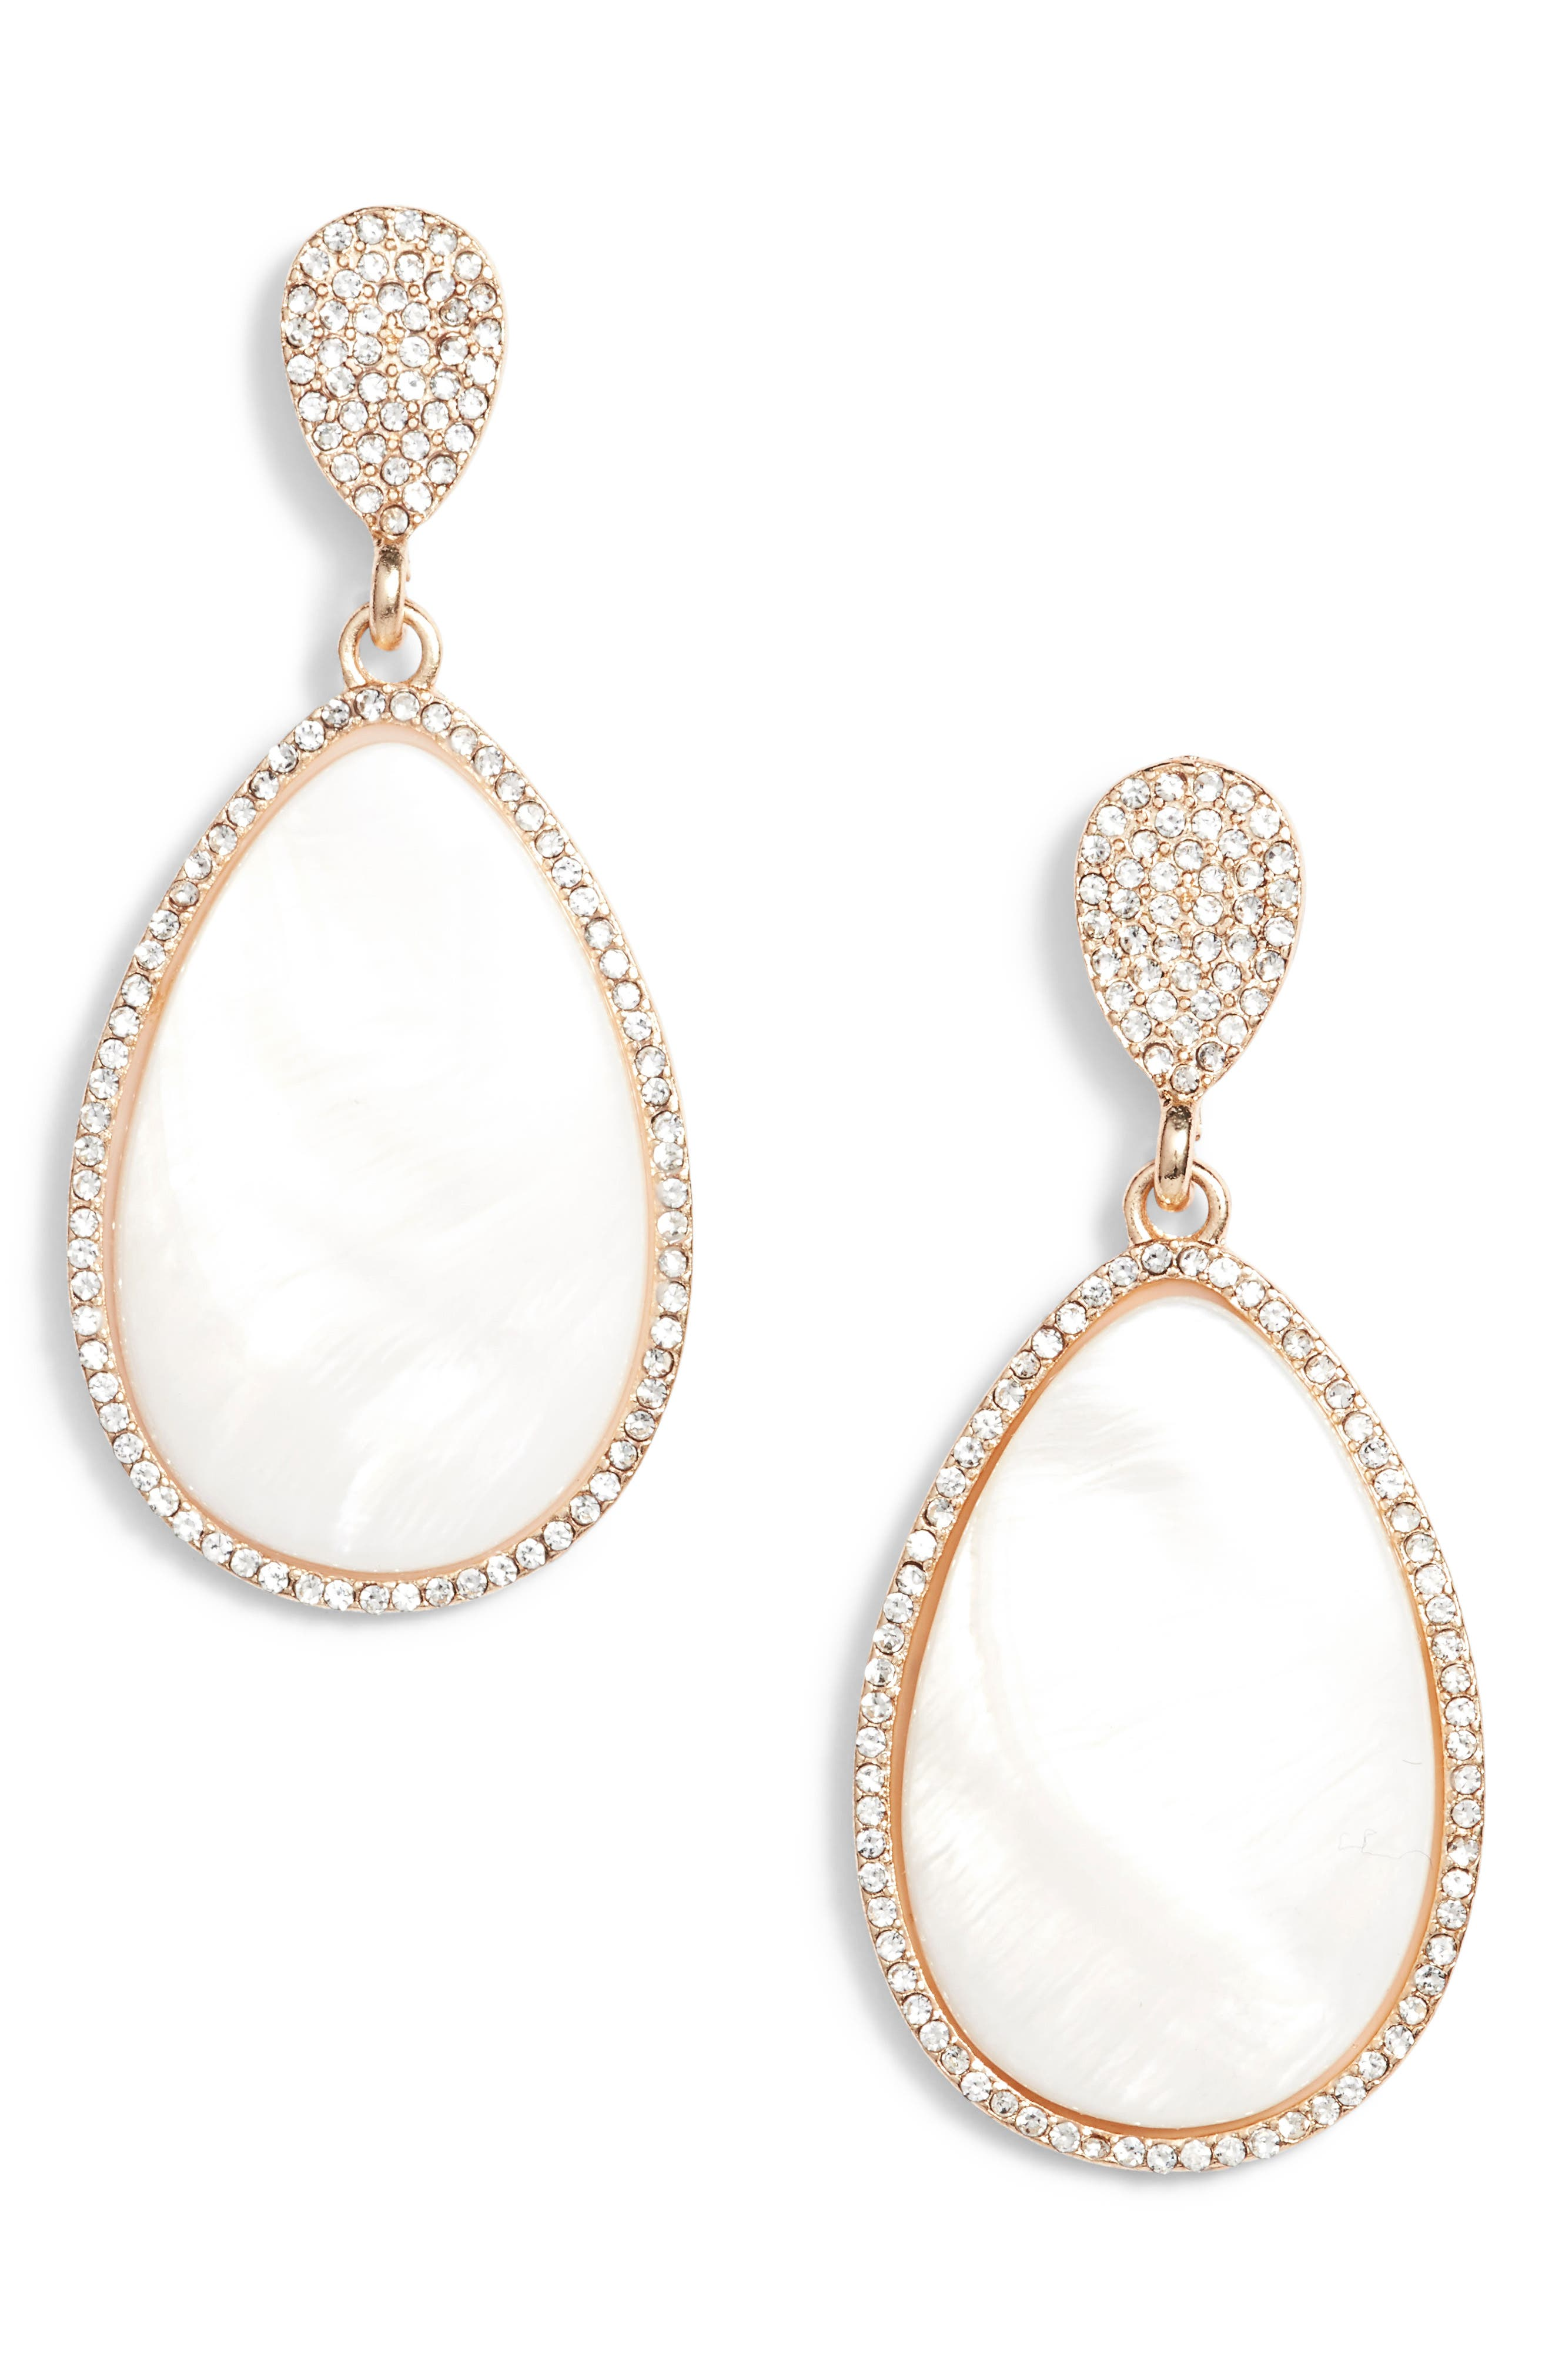 Mother-of-Pearl Drop Earrings,                         Main,                         color, Gold/ White